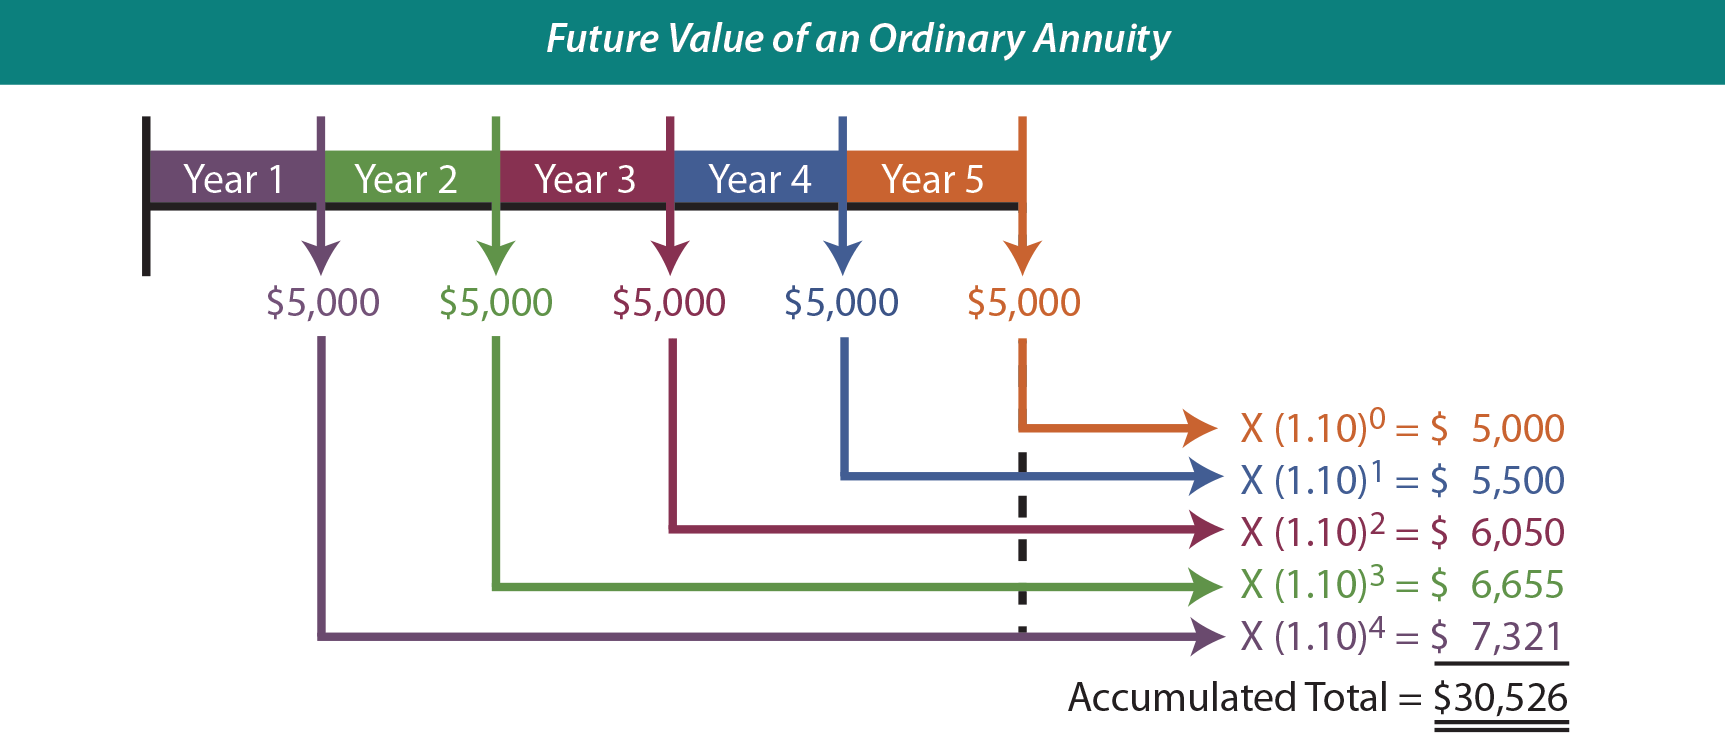 find the present value of the following ordinary annuities 400 per year for 10 years at 10 1 a 5-year ordinary annuity has a present value of $1,000 if the interest rate is 8 percent, the amount of each annuity payment is closest to which of the following a $25044 b $23191 c $18162 d $18408 e $17044.